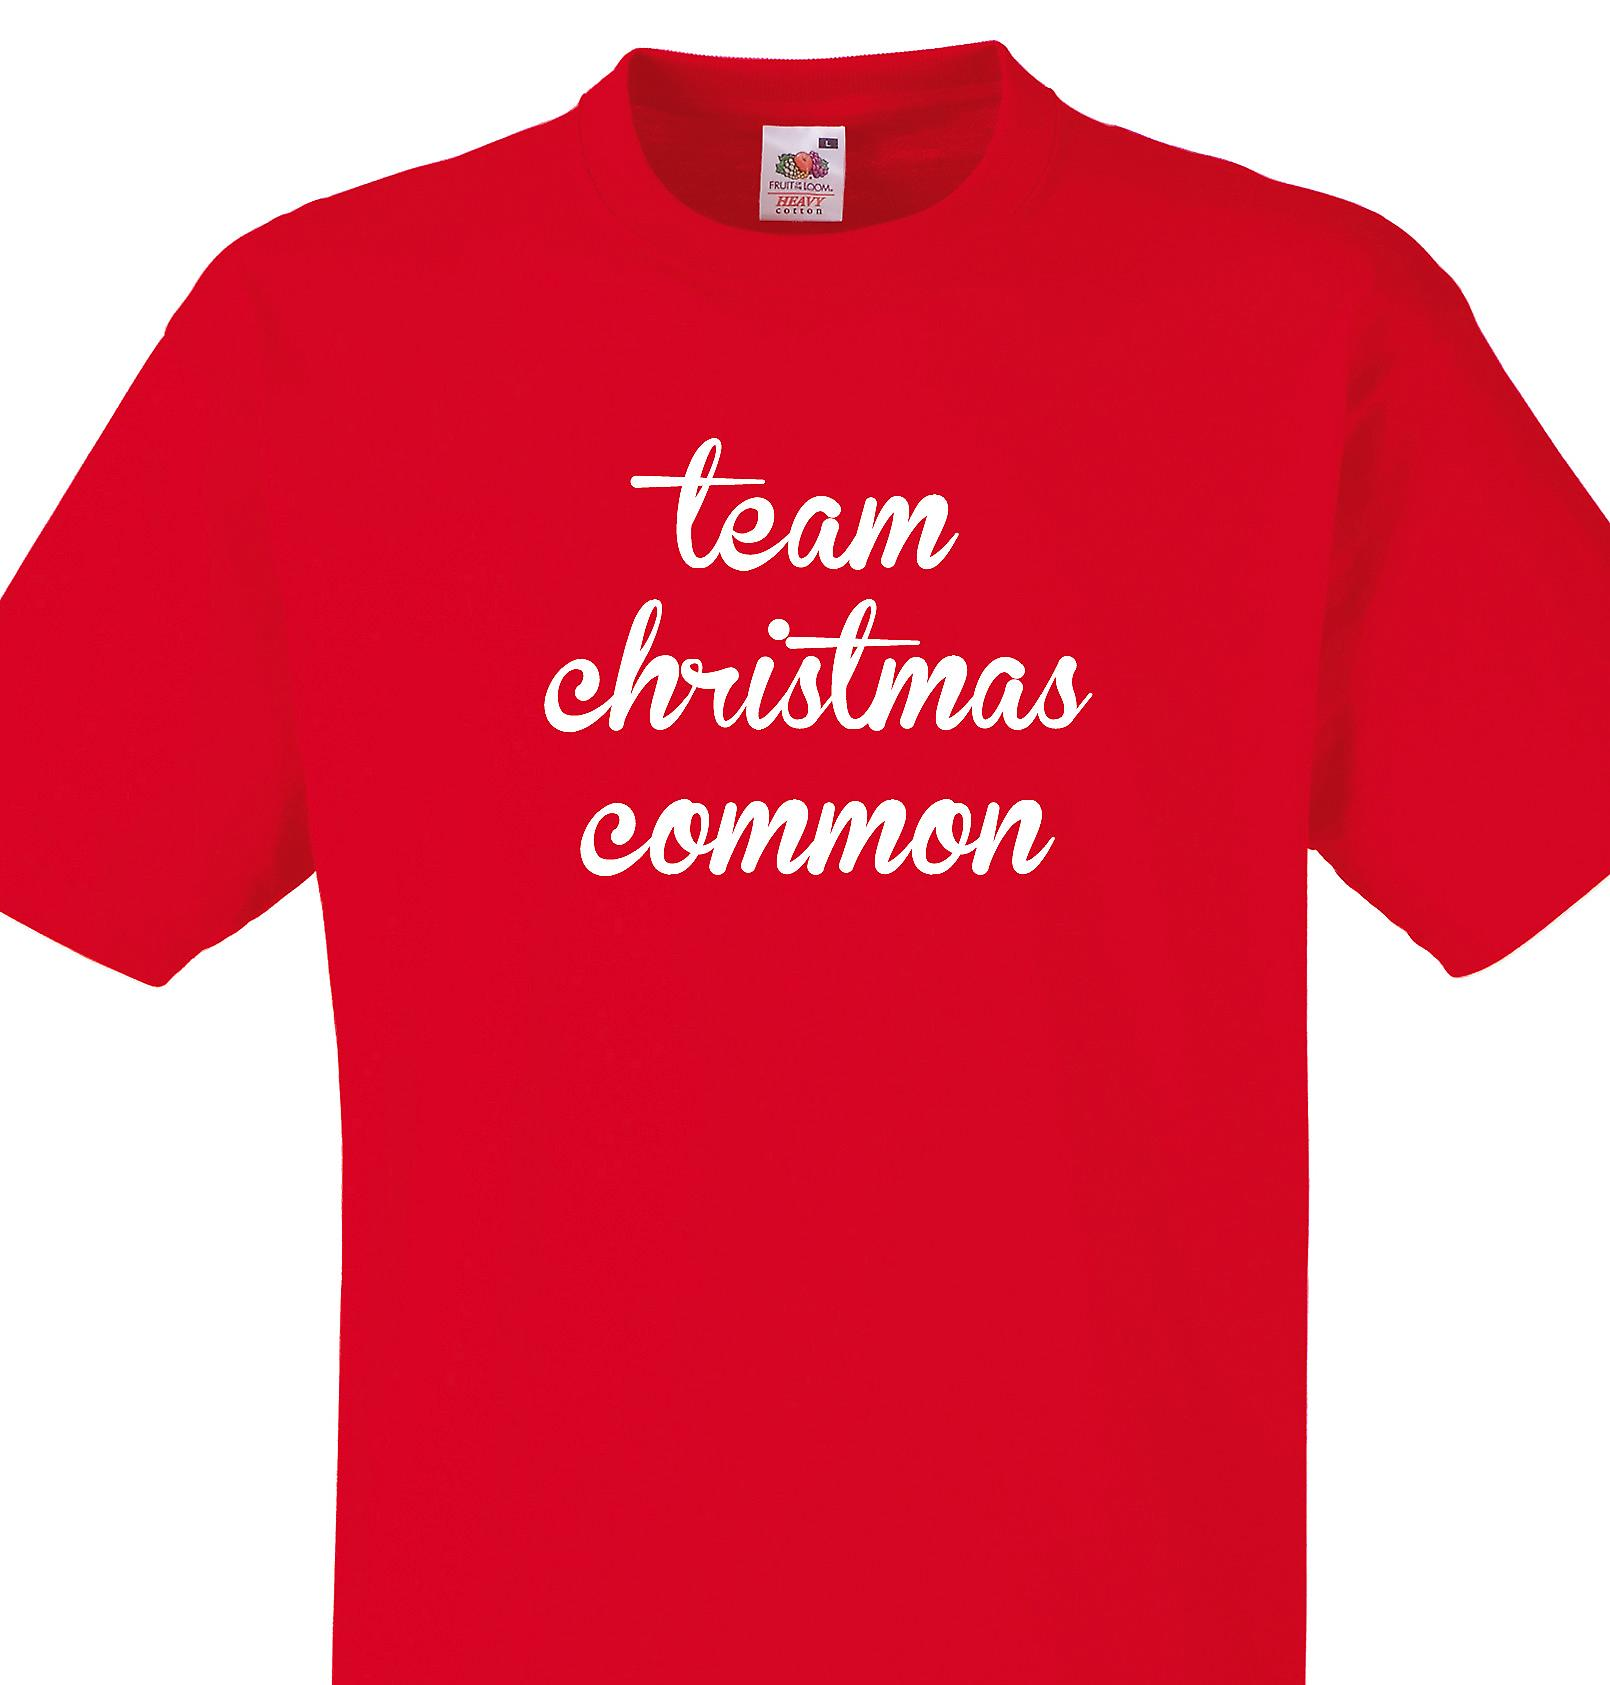 Team Christmas common Red T shirt